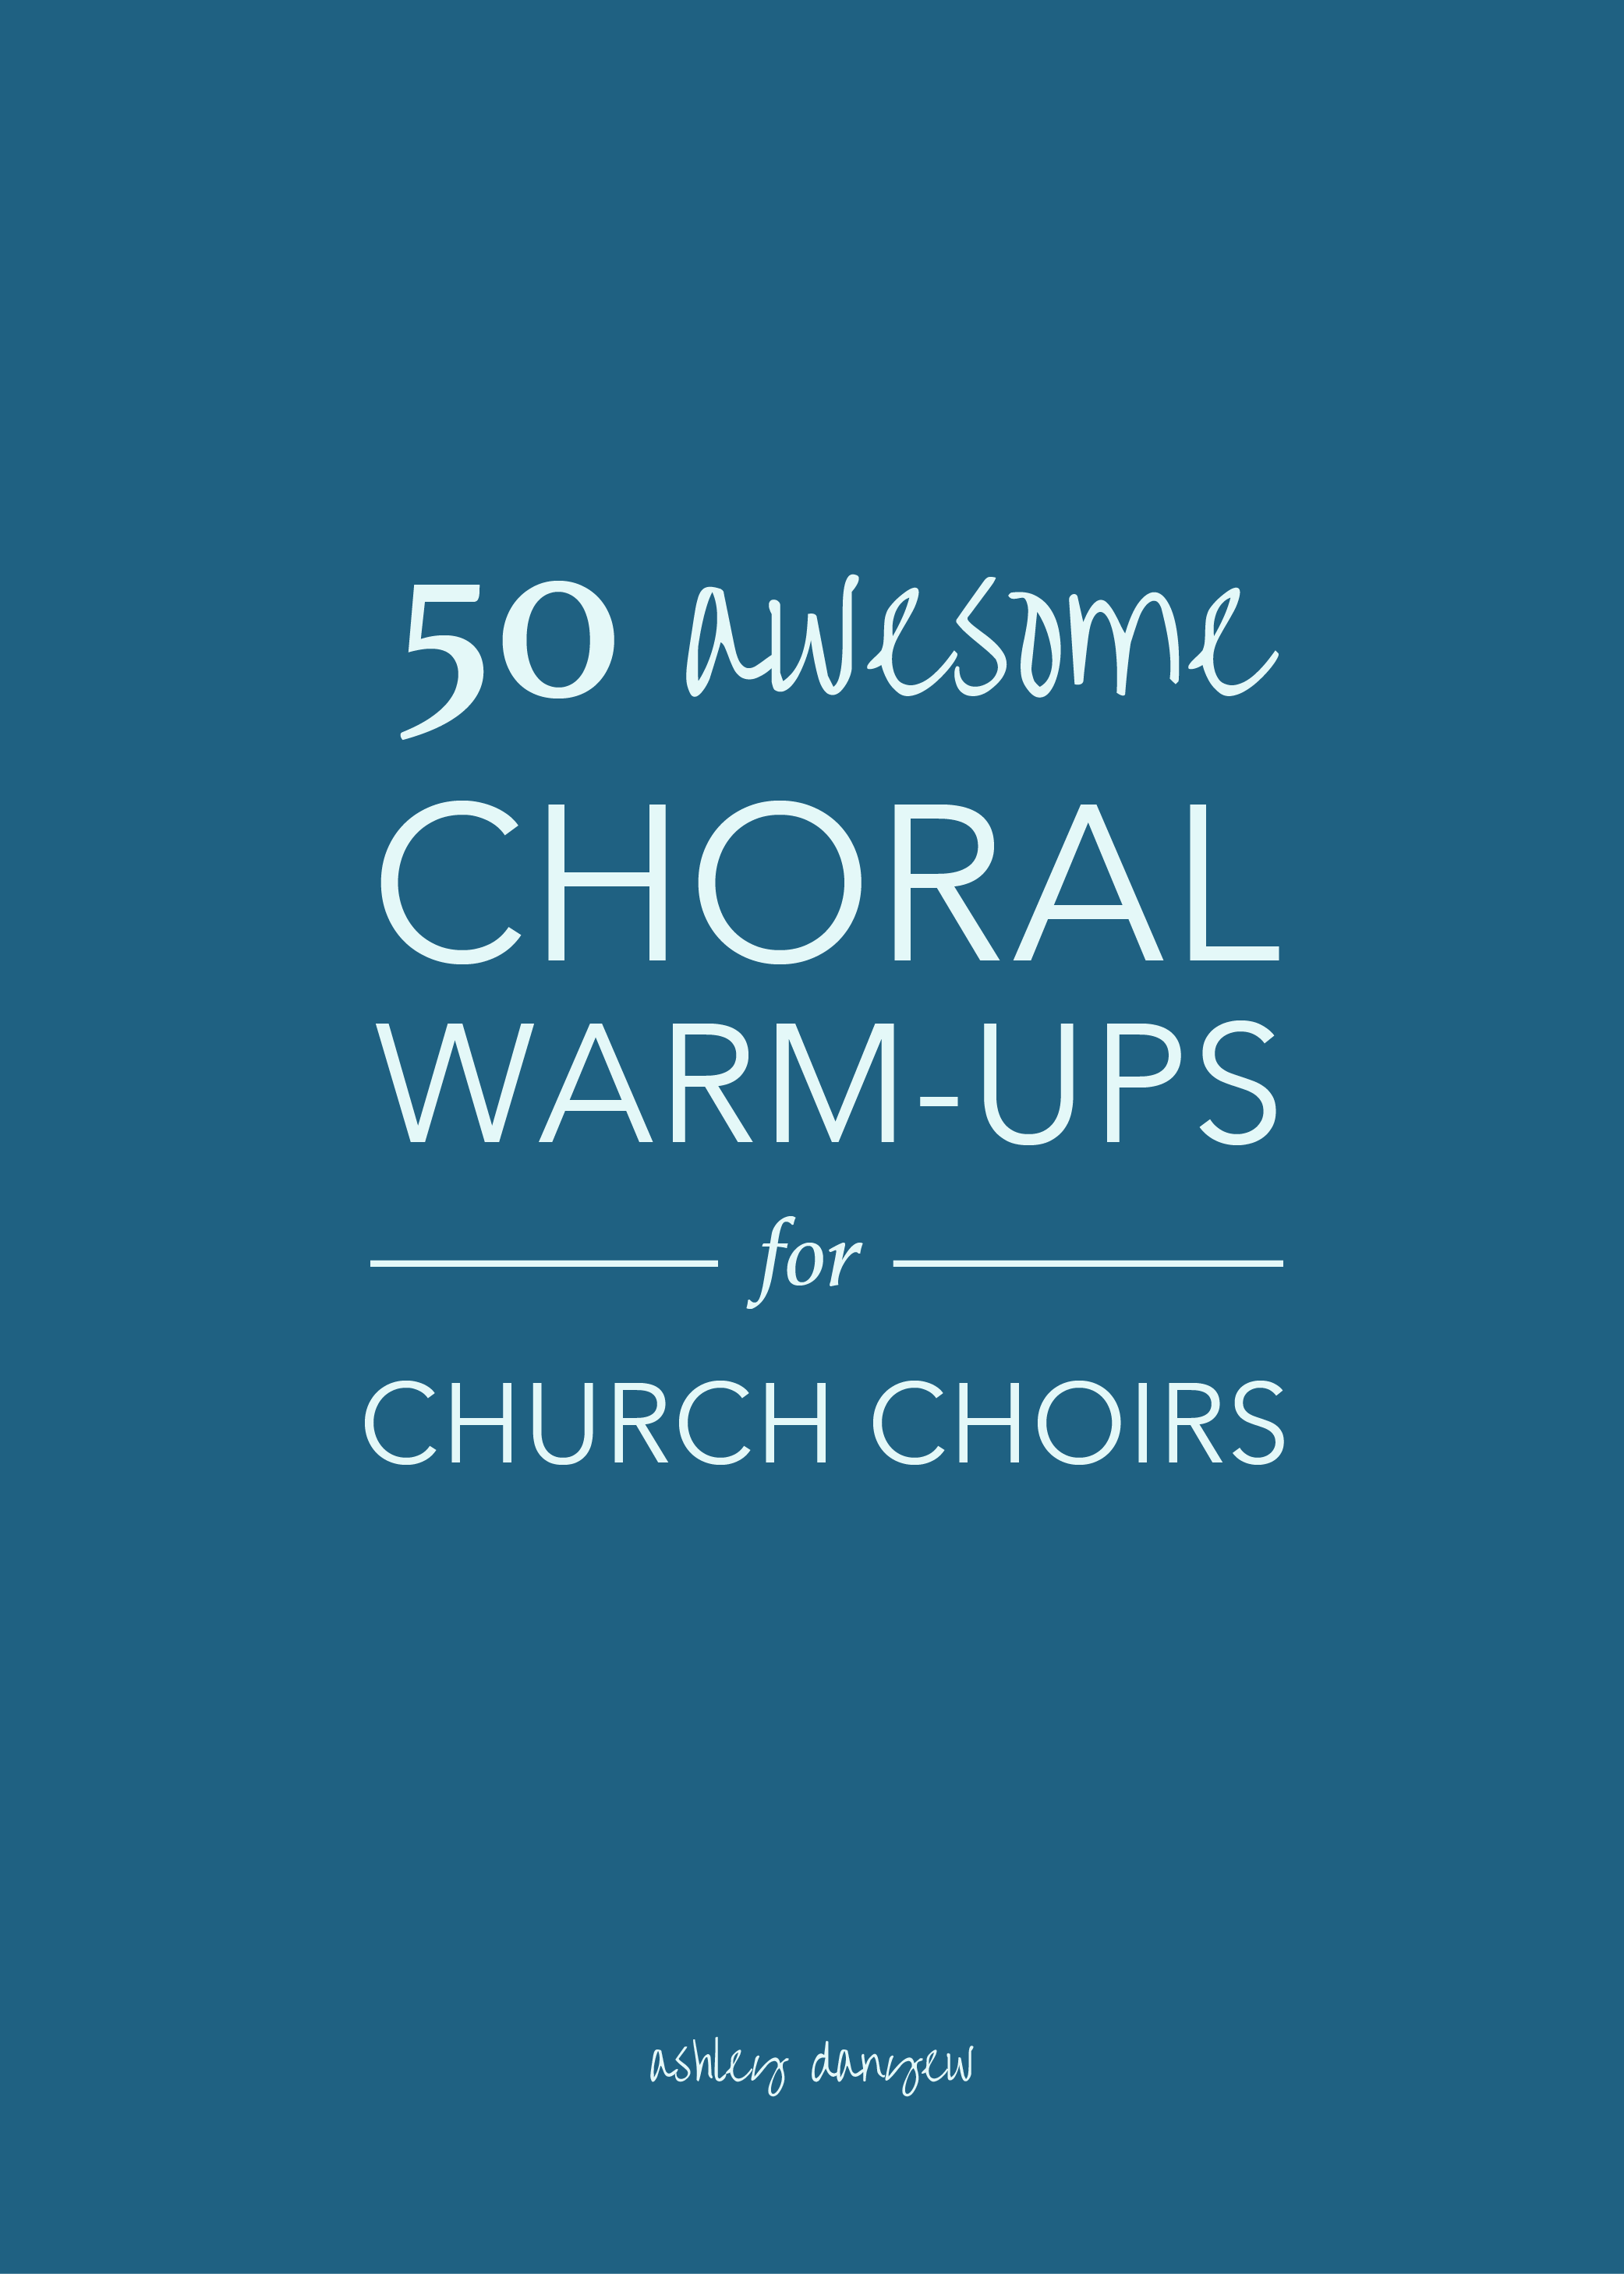 50-Awesome-Choral-Warm-Ups-for-Church-Choirs-01.png